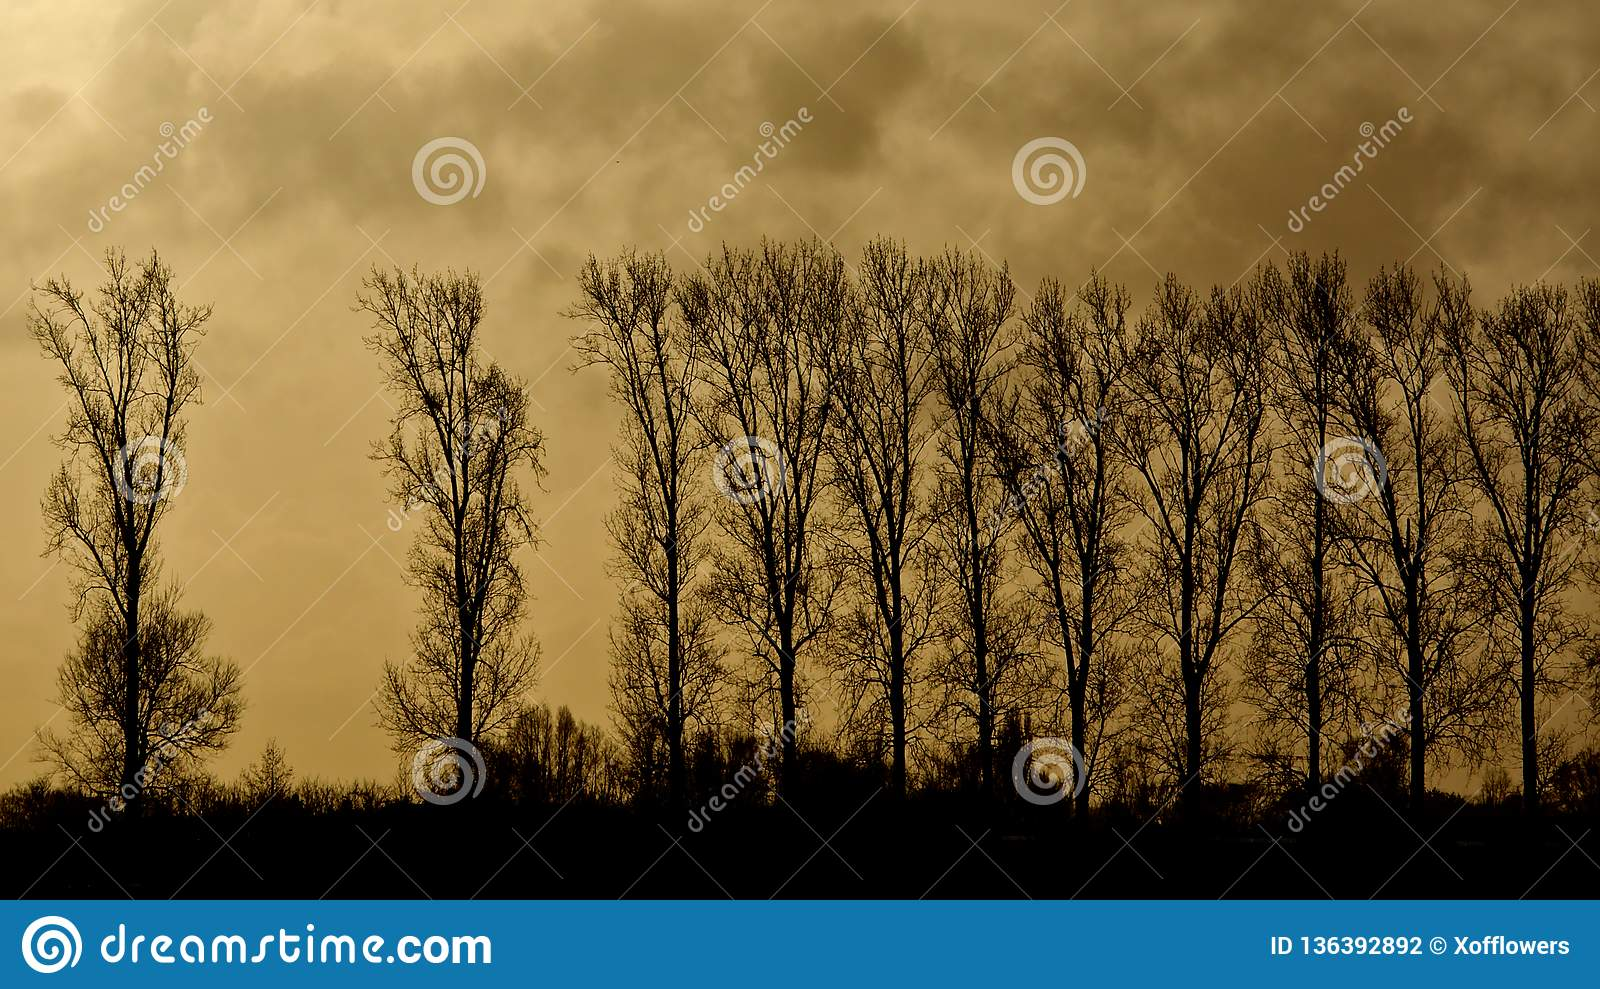 Silhouette of row of Elm trees against a cloudy yellow evening sky